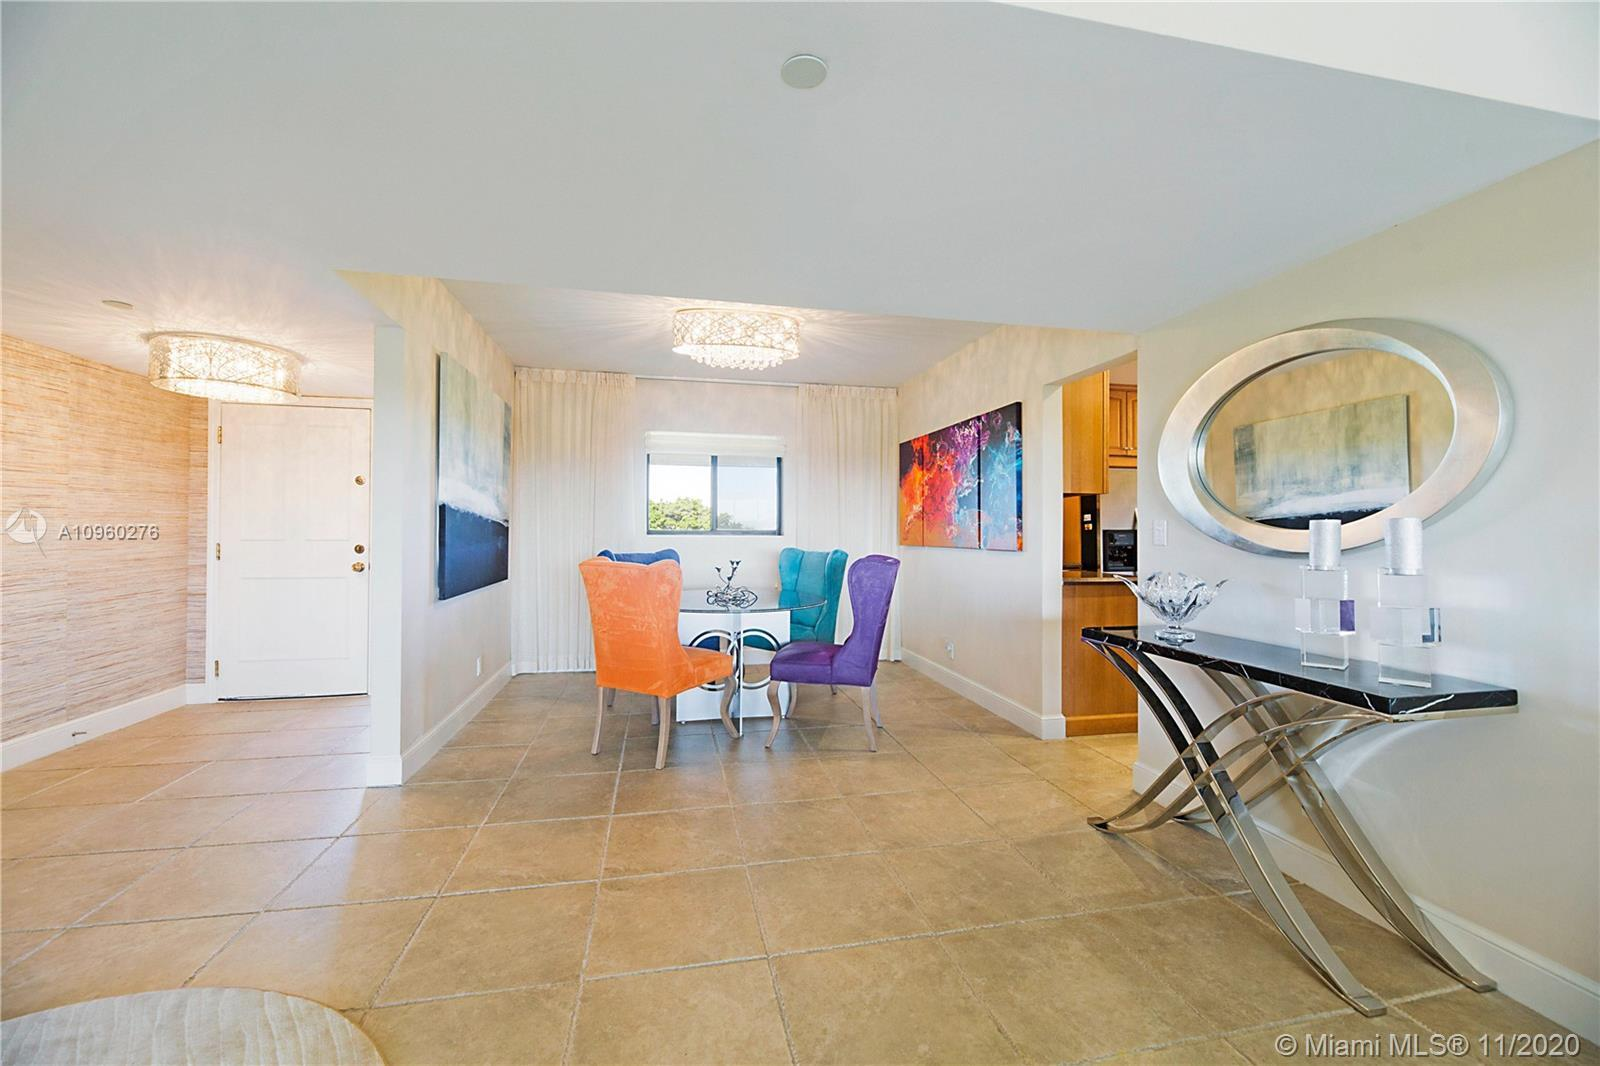 Beautiful Penthouse Condo with Cathedral Ceilings and 2 Master Bedrooms and ensuite bathrooms, Maste